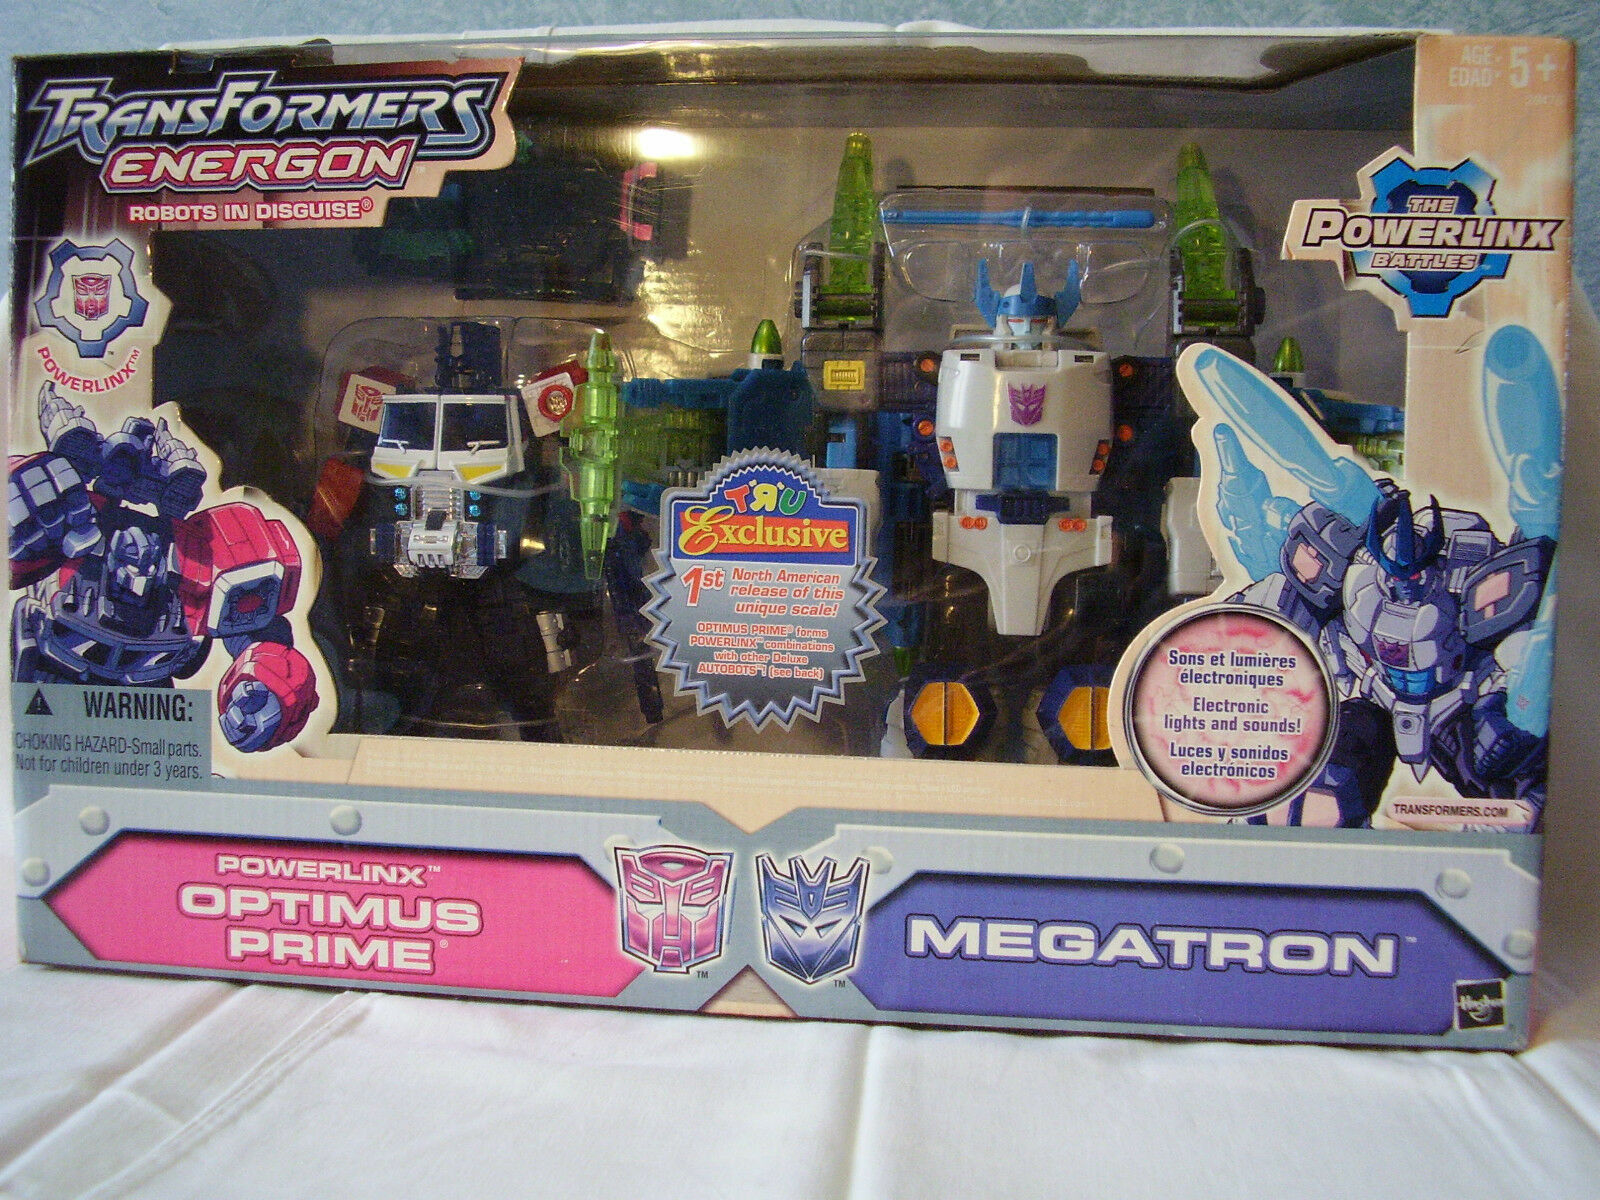 Transformers Energon Powerlinx Optimus Prime - Megatron